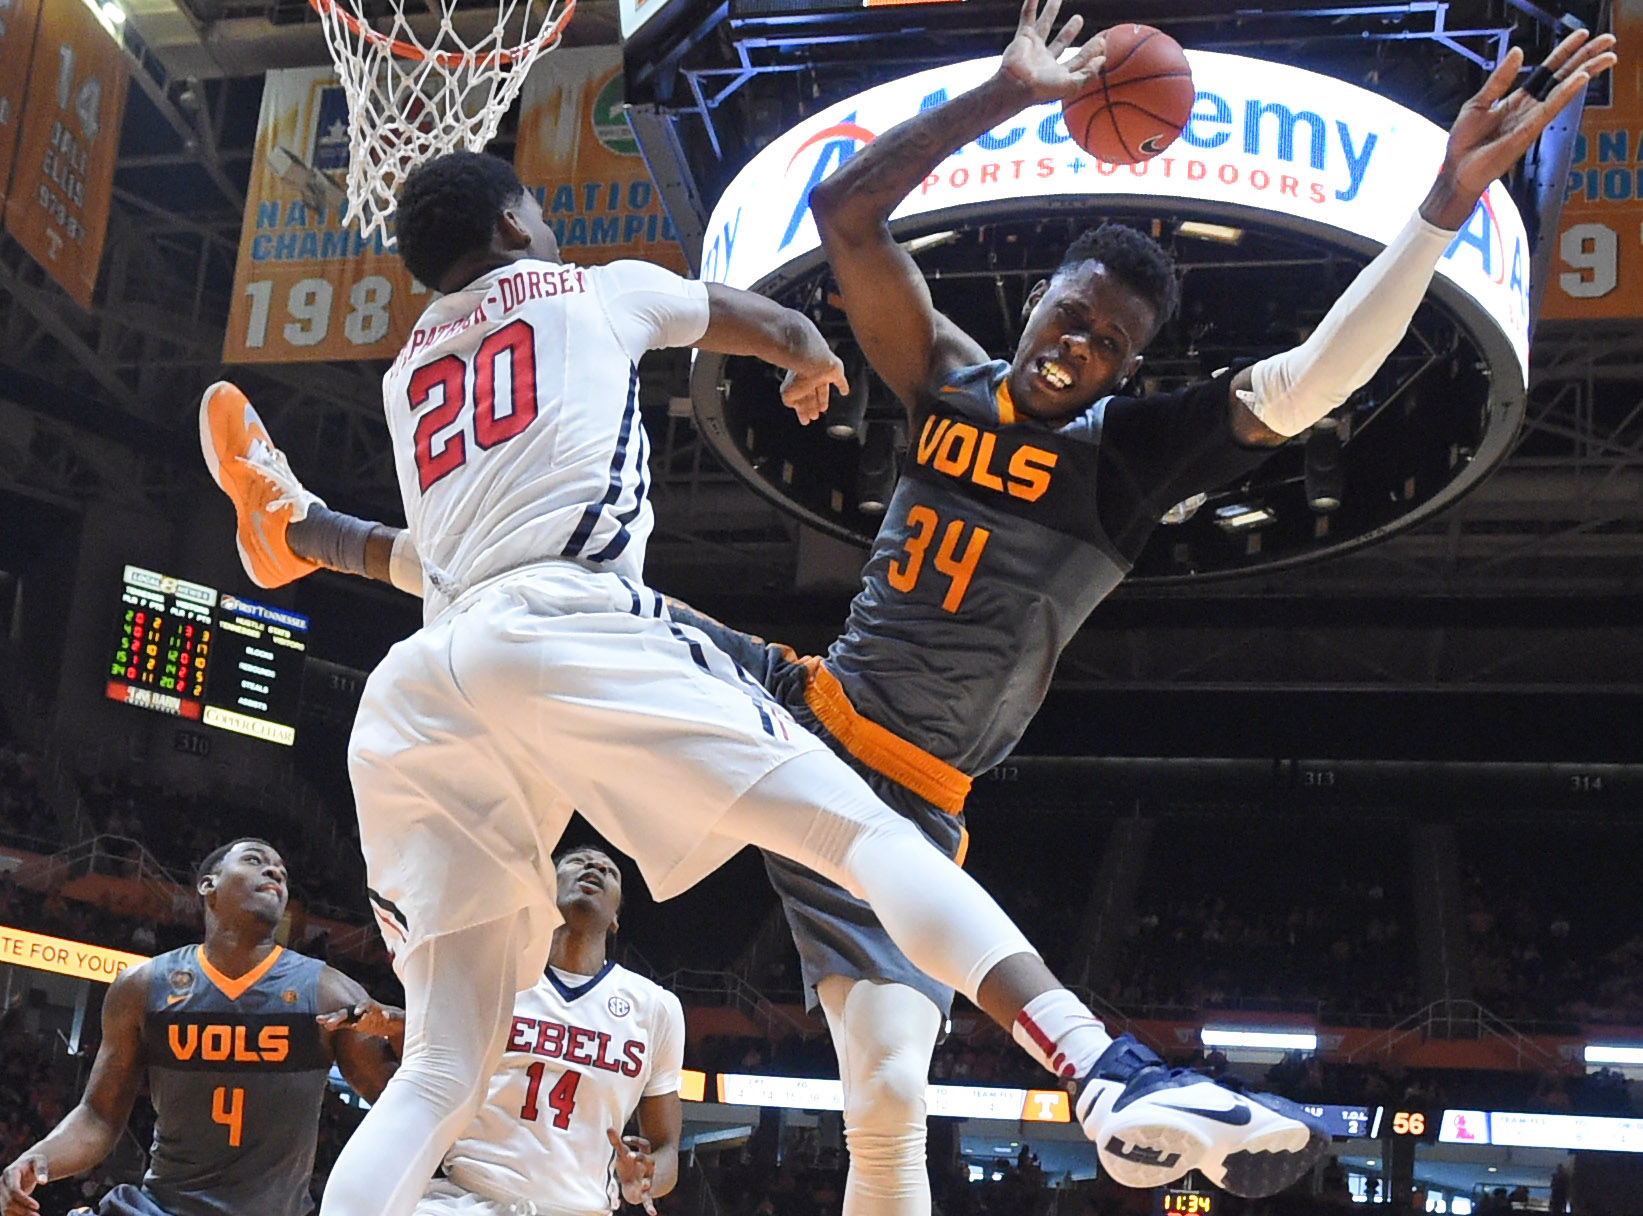 Tennessee guard Devon Baulkman (34) is fouled by Mississippi guard Donte Fitzpatrick-Dorsey (20) while attempting to score during the second half of an NCAA college basketball game, Saturday, March 5, 2016, in Knoxville, Tenn. (Adam Lau/Knoxville News Sen